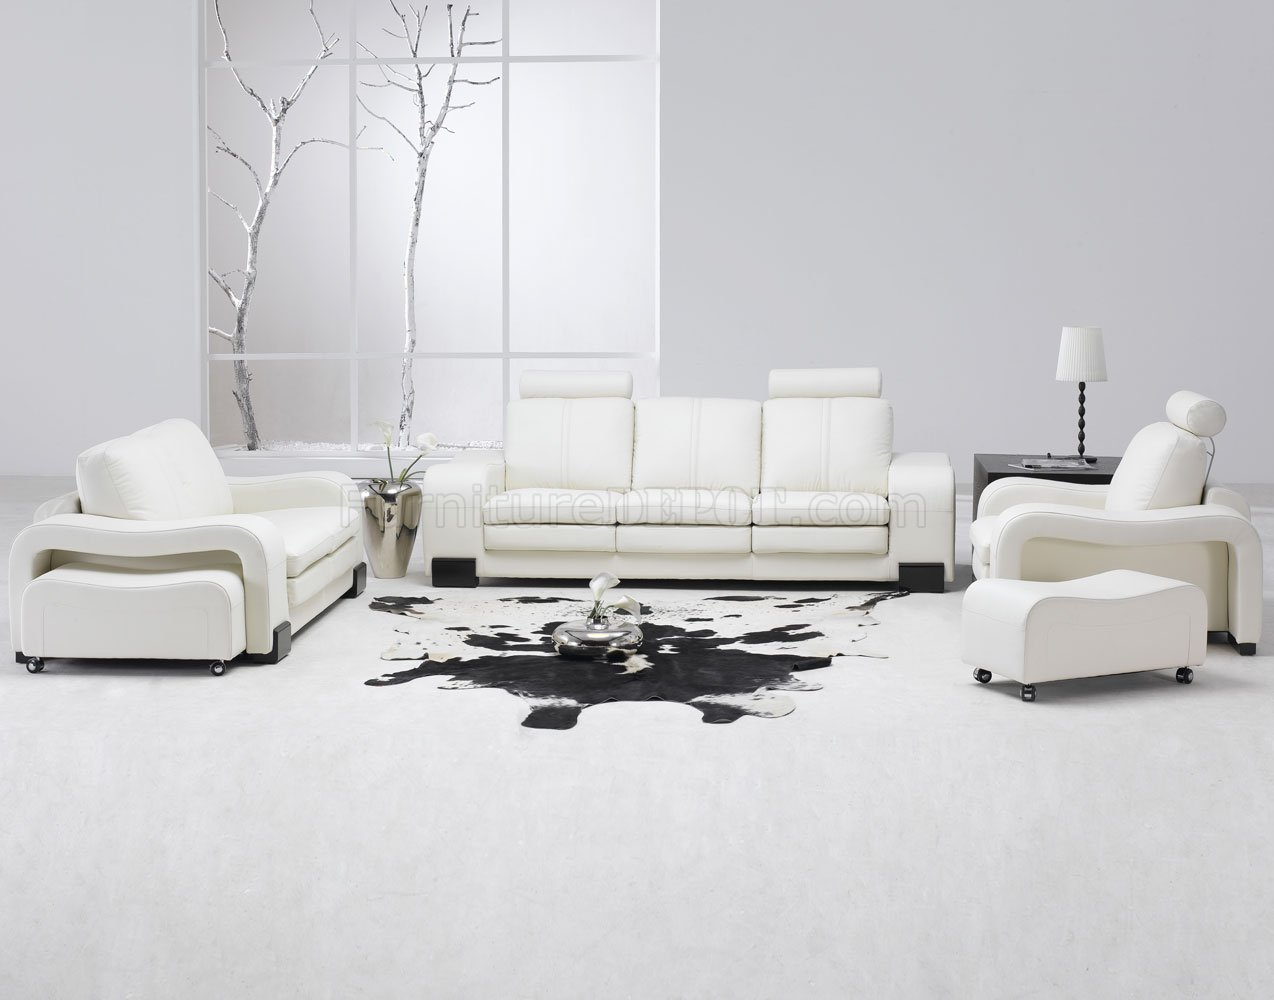 White Leather 4Pc Modern Sofa, Loveseat, Chair & Couch Stool Set